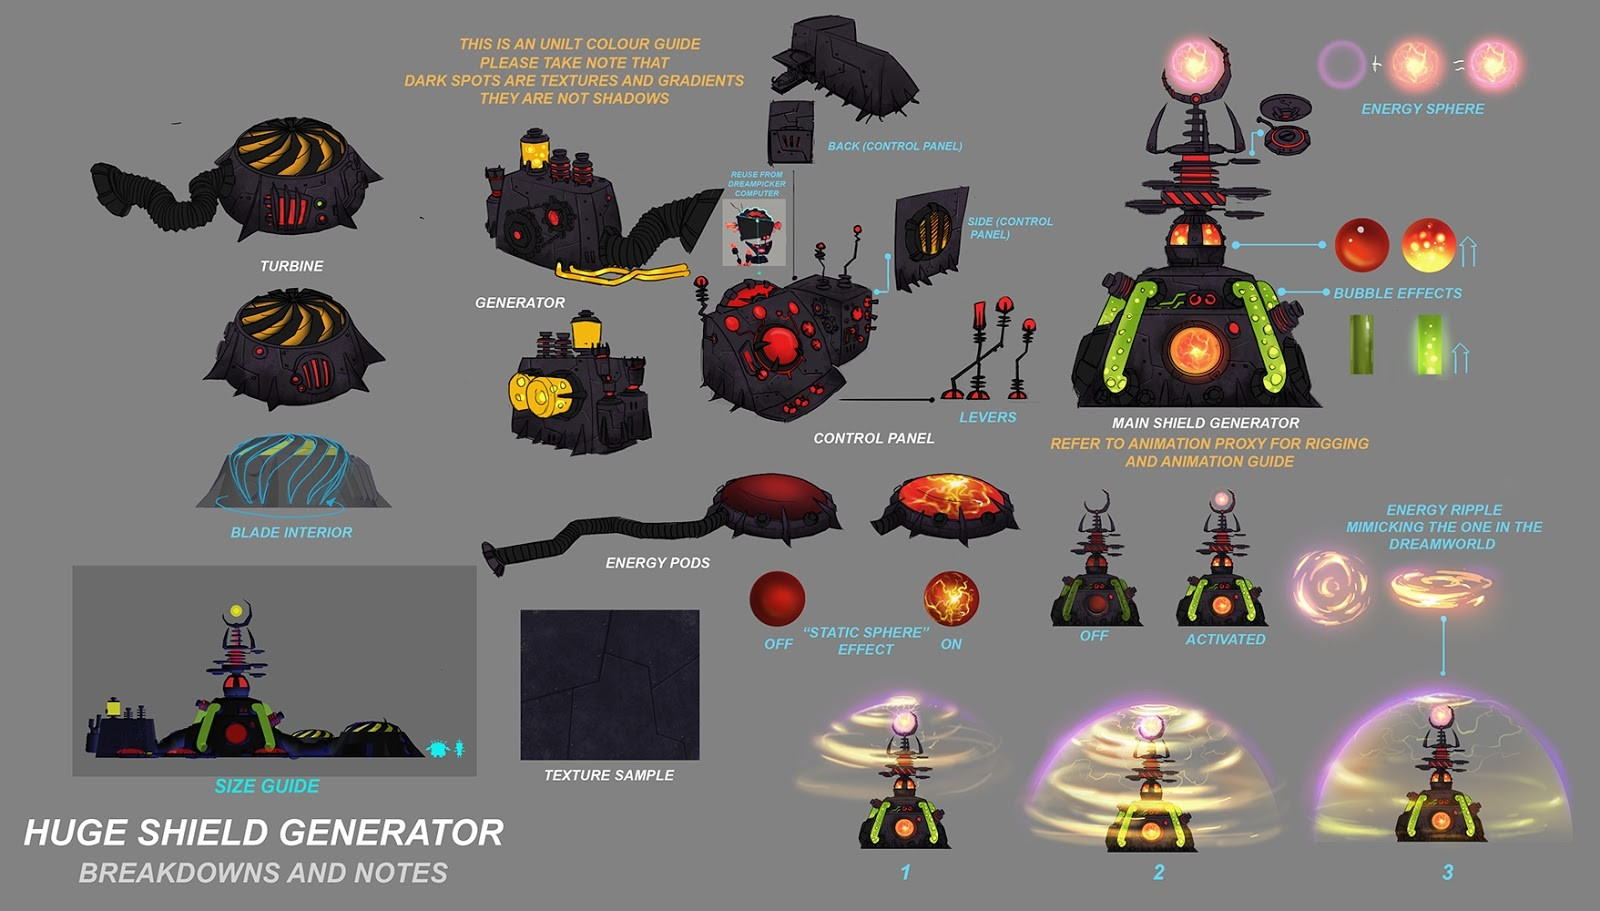 Jose cua huge shield generator breakdowns and effects notes